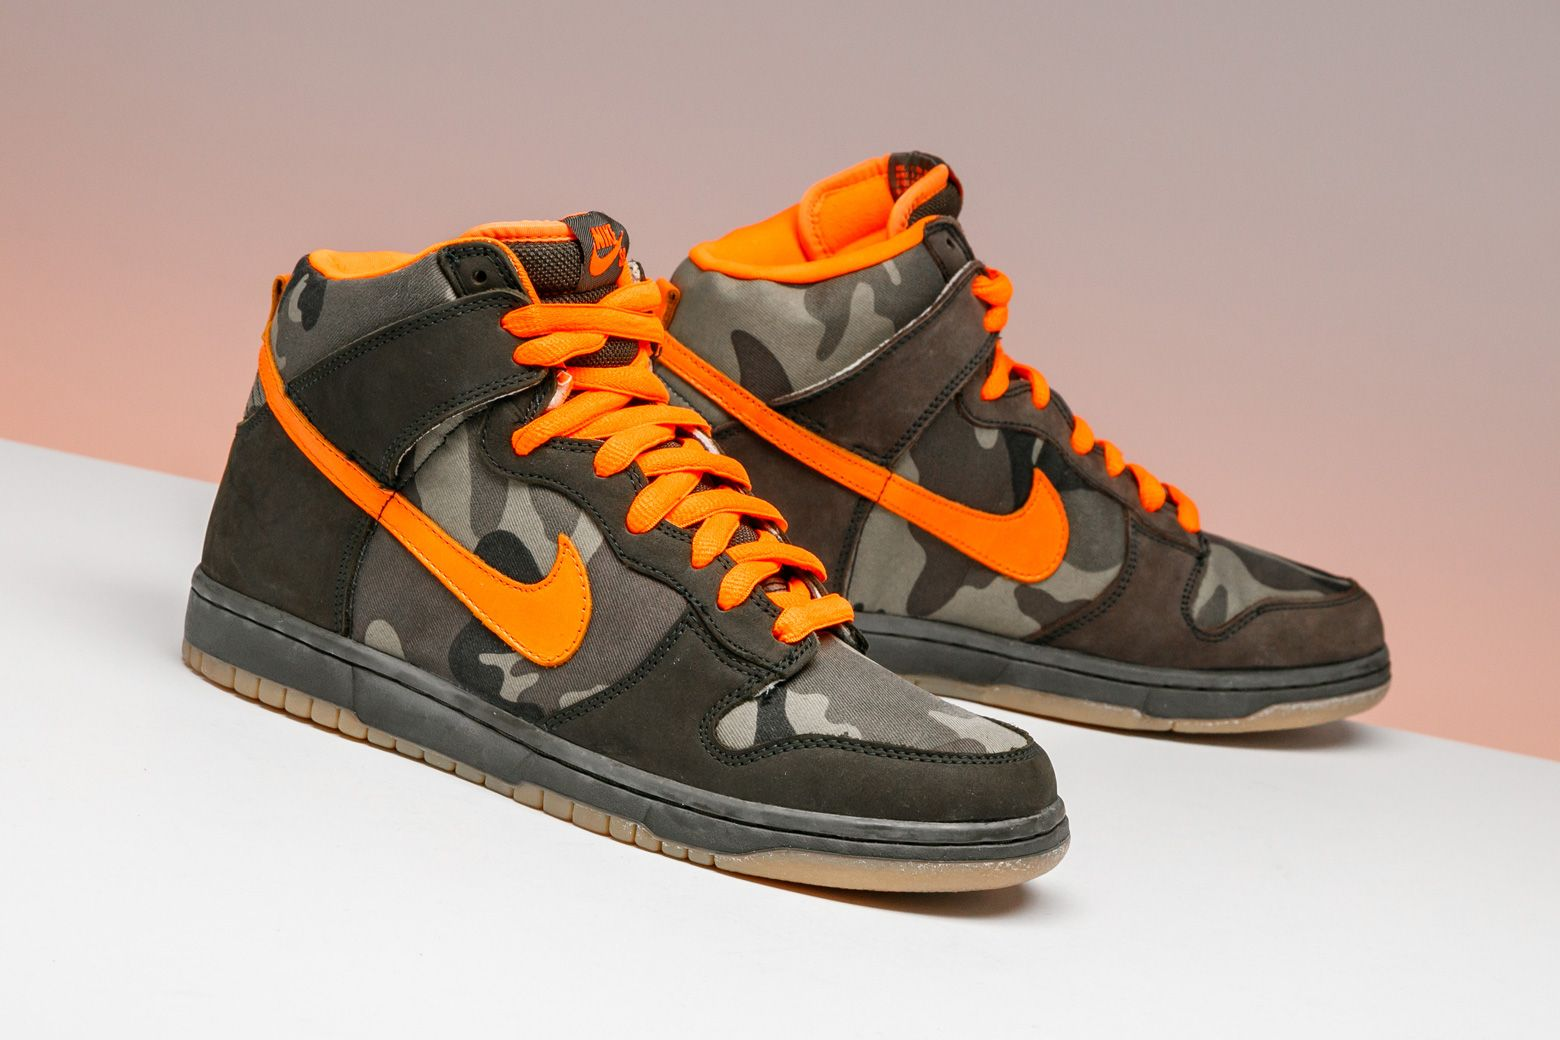 Nike Dunk High Pro Sb Brian Anderson 305050 281 Nike Shoes Jordans Sneakers Black And Gold Shoes